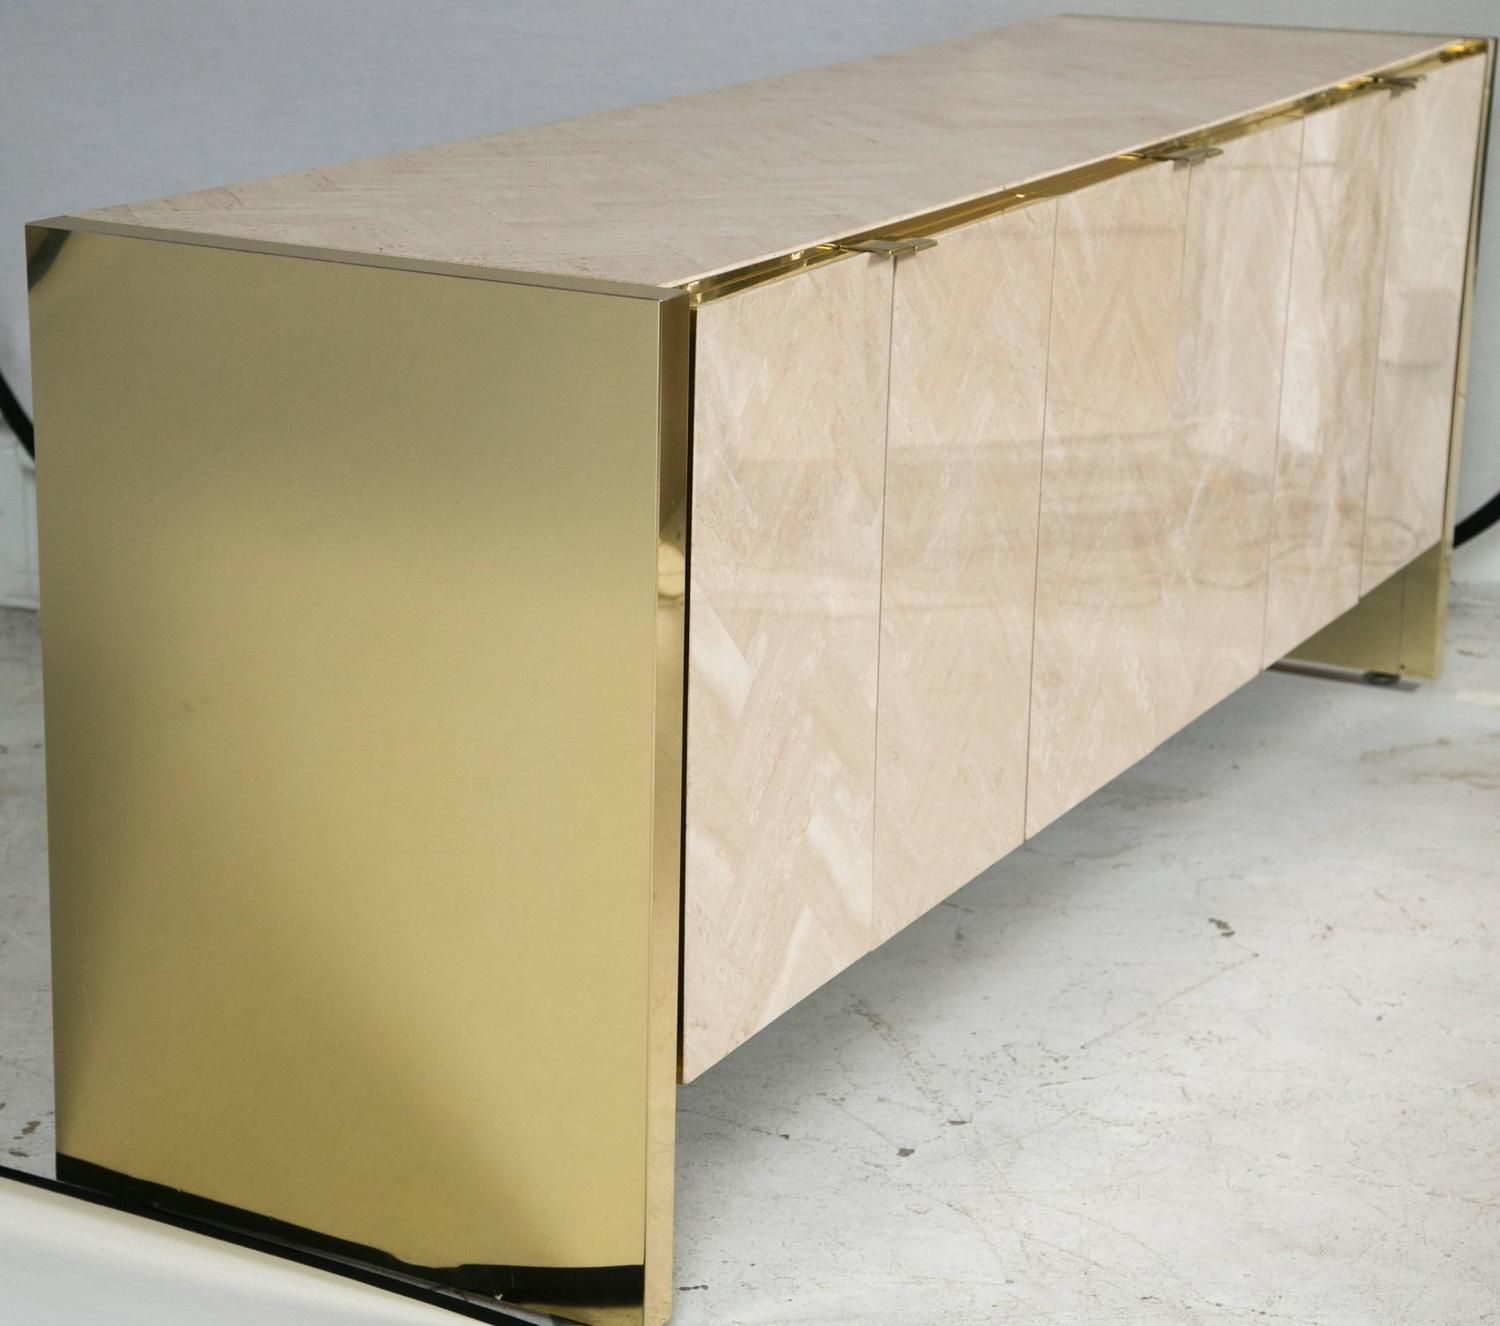 Merveilleux Polished Herringboned Travertine And Brass Credenza By Ello Furniture 3